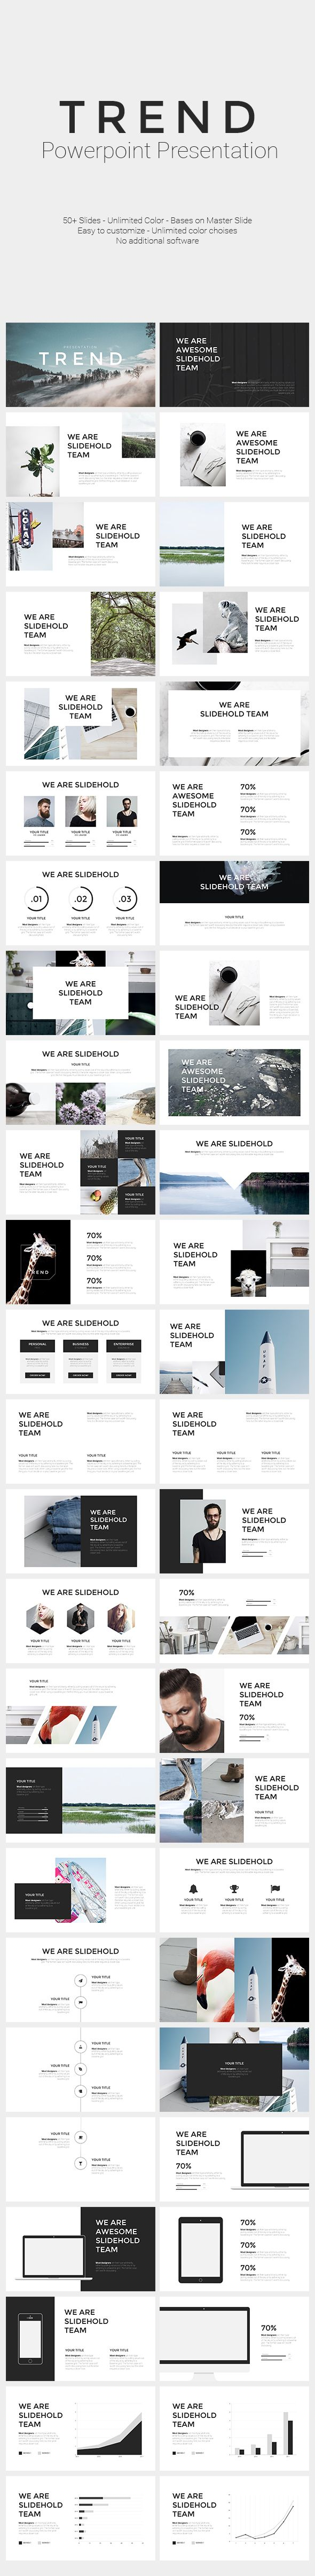 Trend powerpoint template apresentao diagramao e design trend powerpoint template toneelgroepblik Image collections